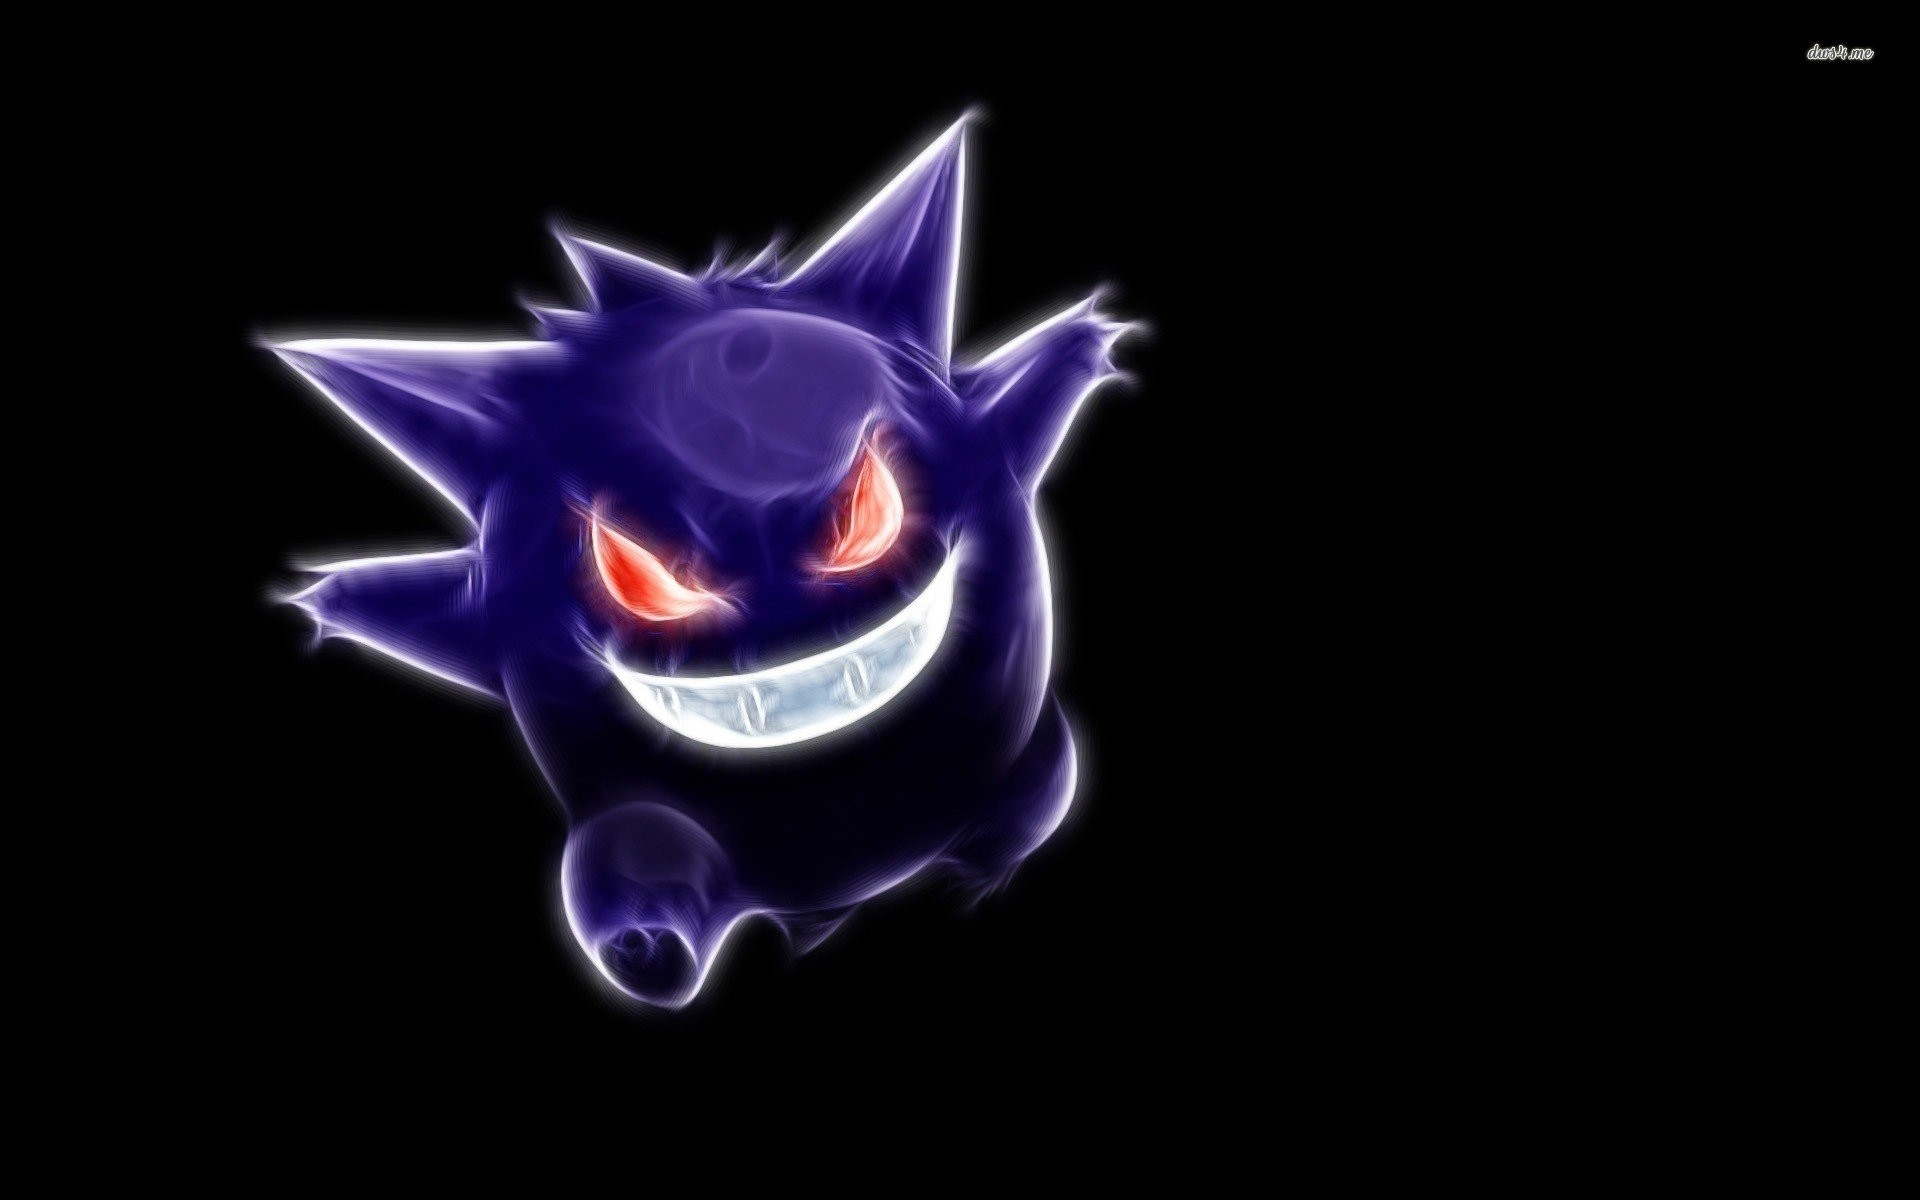 1920x1200 726002 Gengar Pokemon Wallpaper